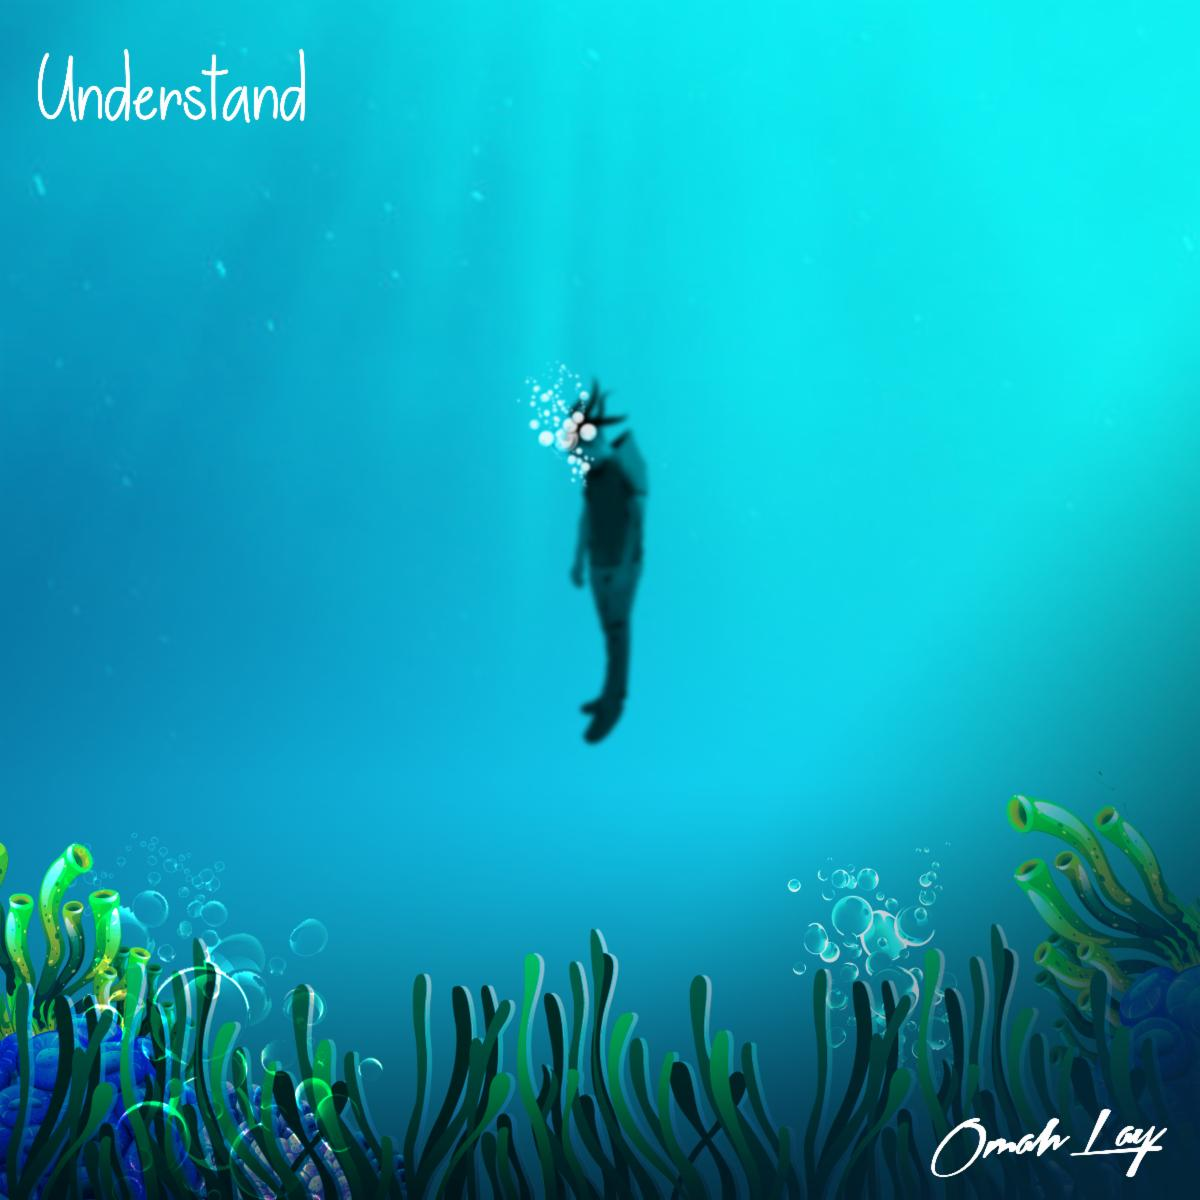 """Rising Nigerian pop star Omah Lay shares the emotional """"Understand,"""" his first solo release of 2021, out today on Sire Records. On """"Understand,"""" Omah Lay finds himself in deep reflection about romance, wondering why his beloved seems less invested in their relationship than him."""